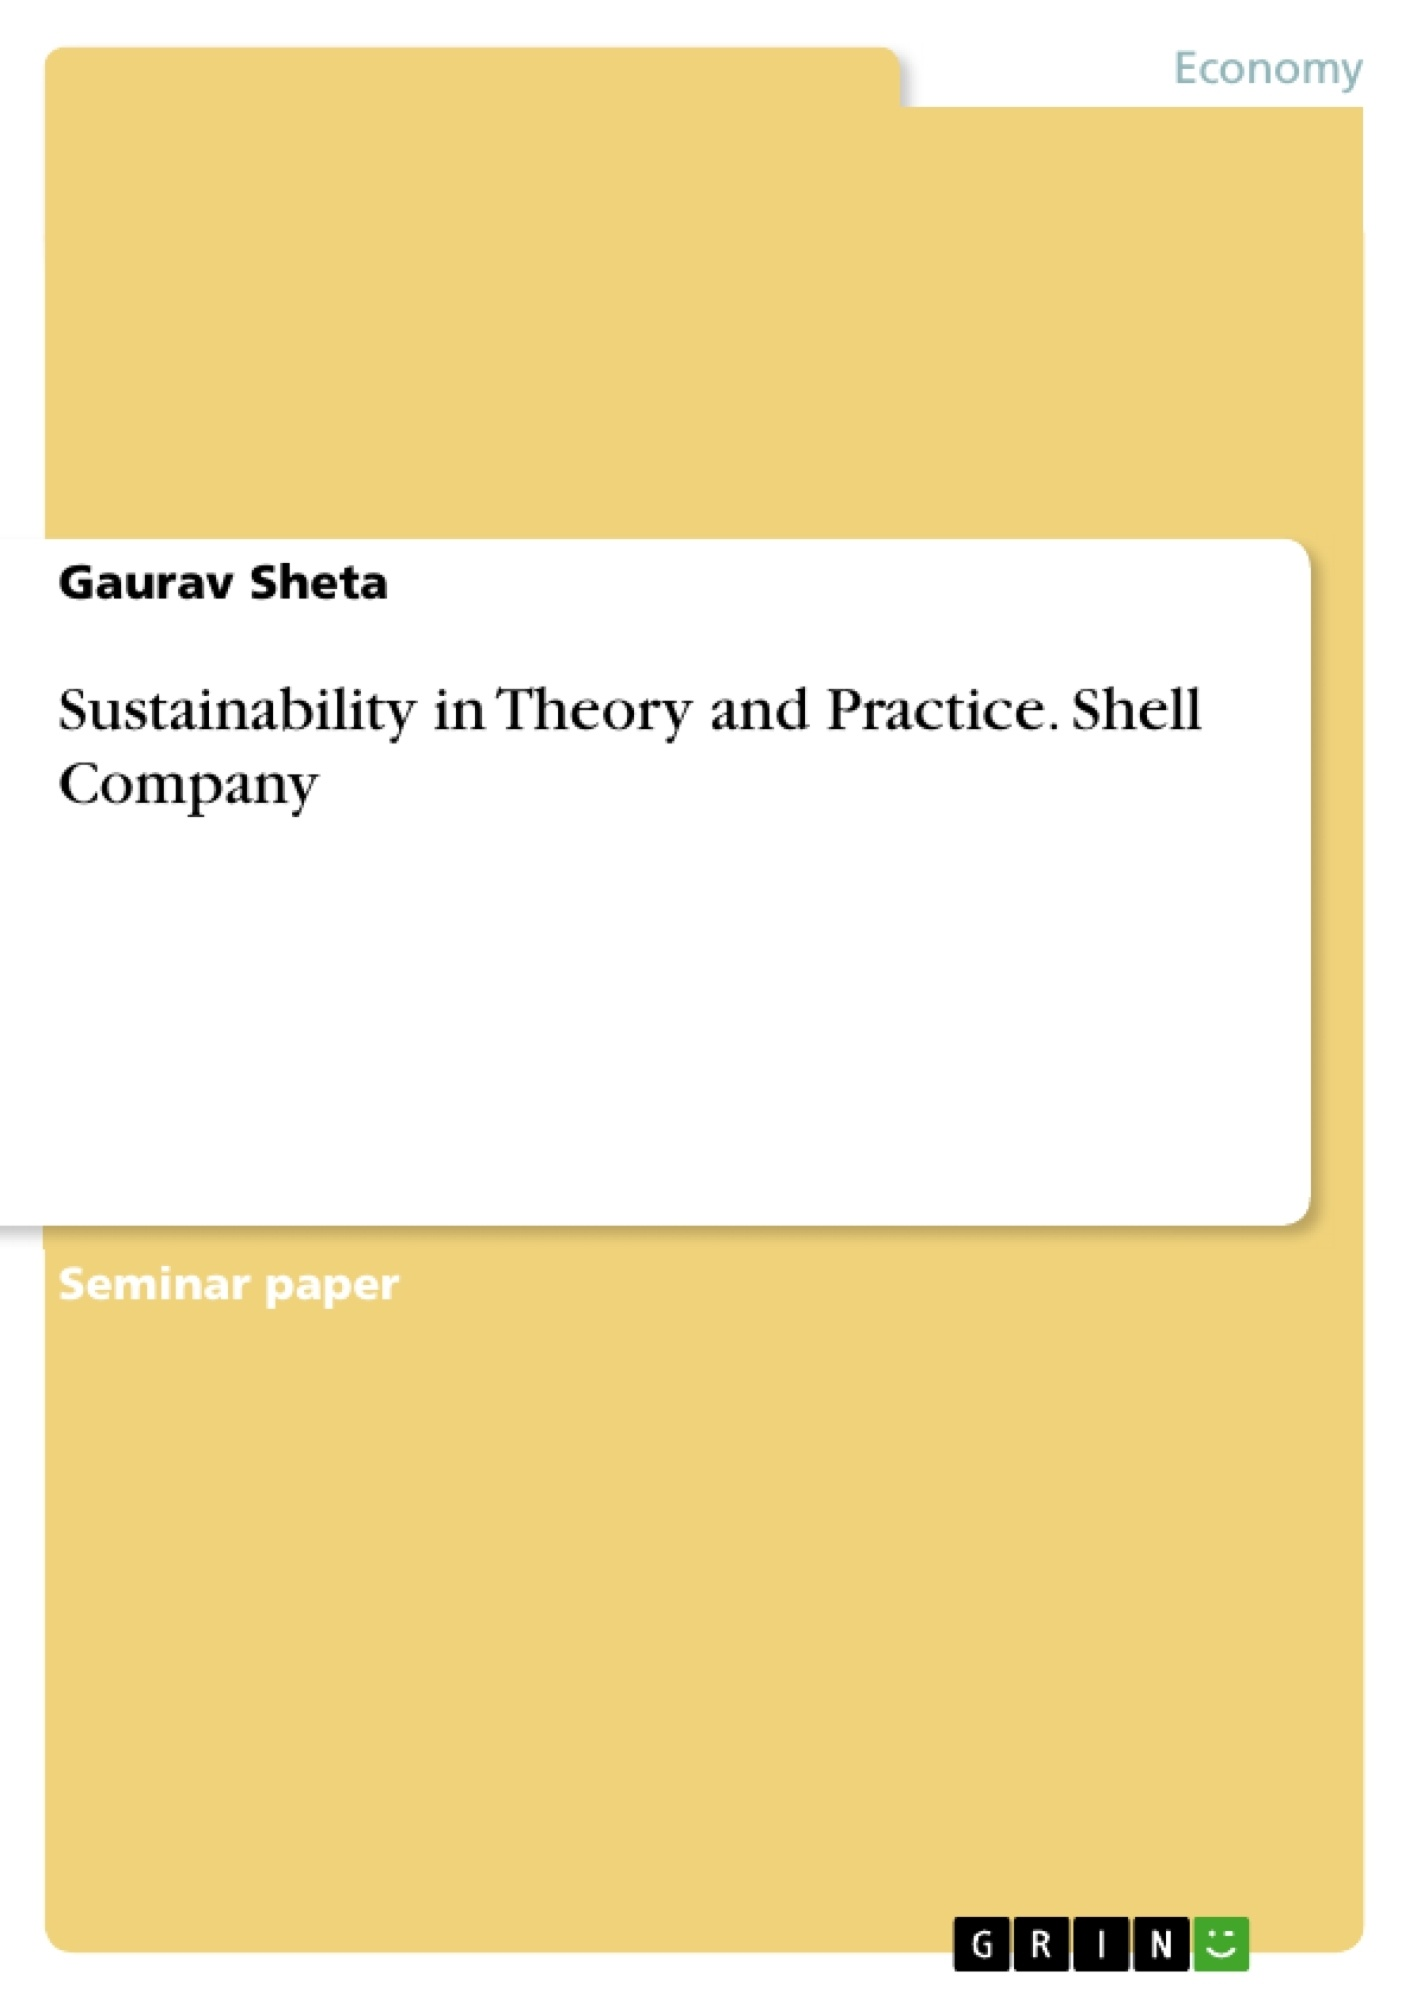 Title: Sustainability in Theory and Practice. Shell Company